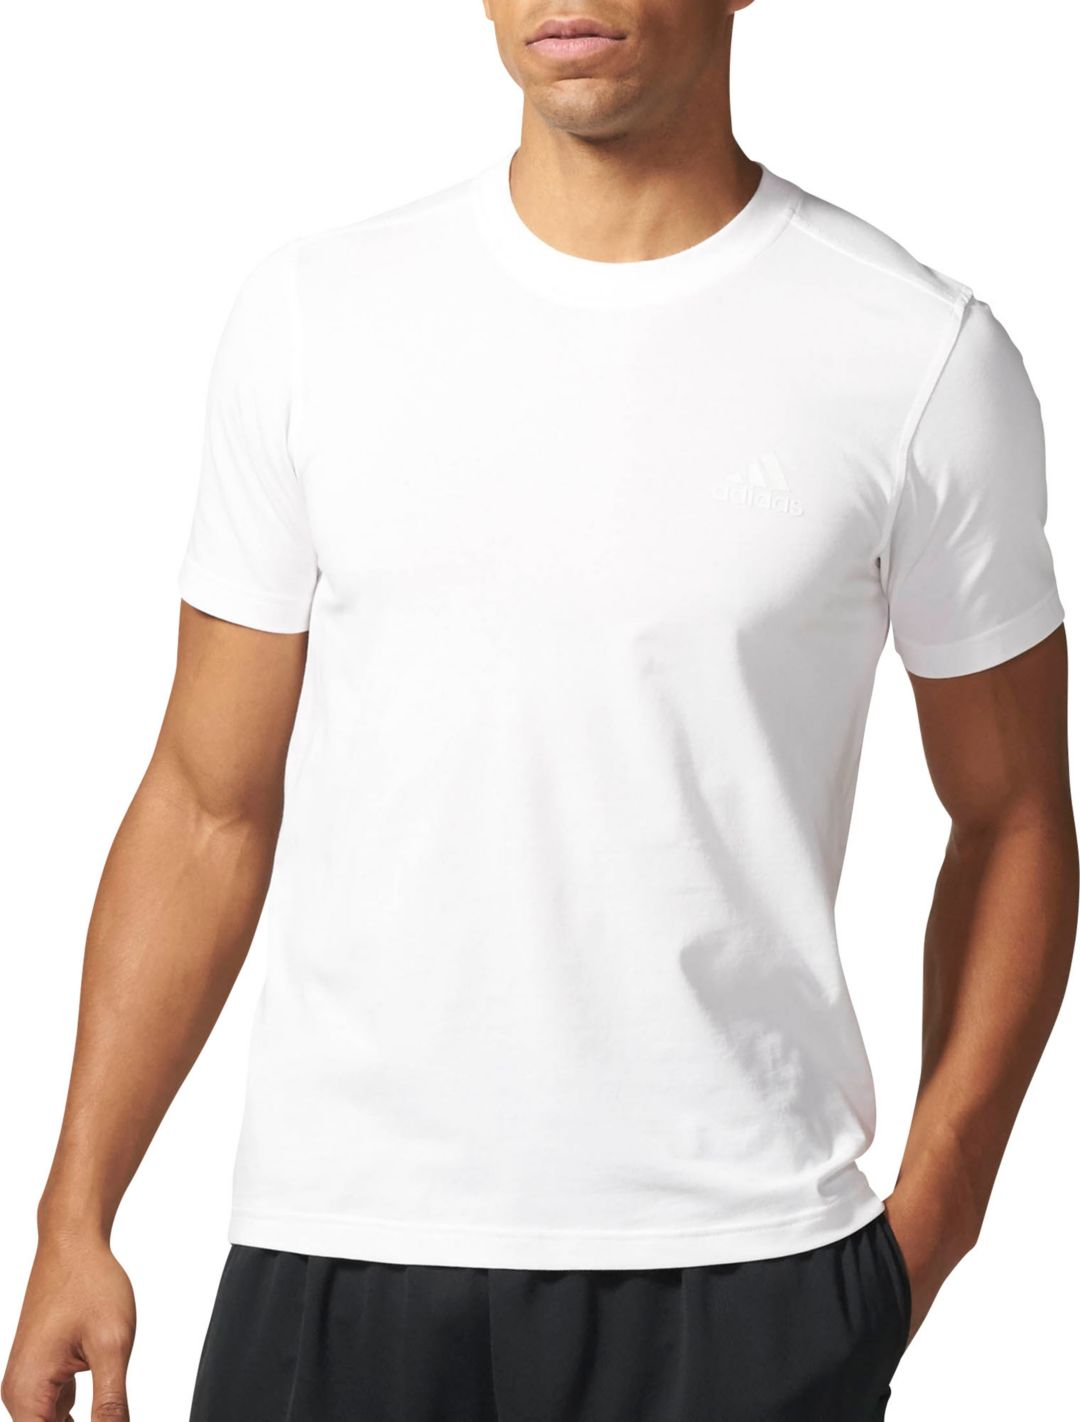 66d4354296 adidas Men's Essentials Droptail 3-Stripes T-Shirt | DICK'S Sporting ...